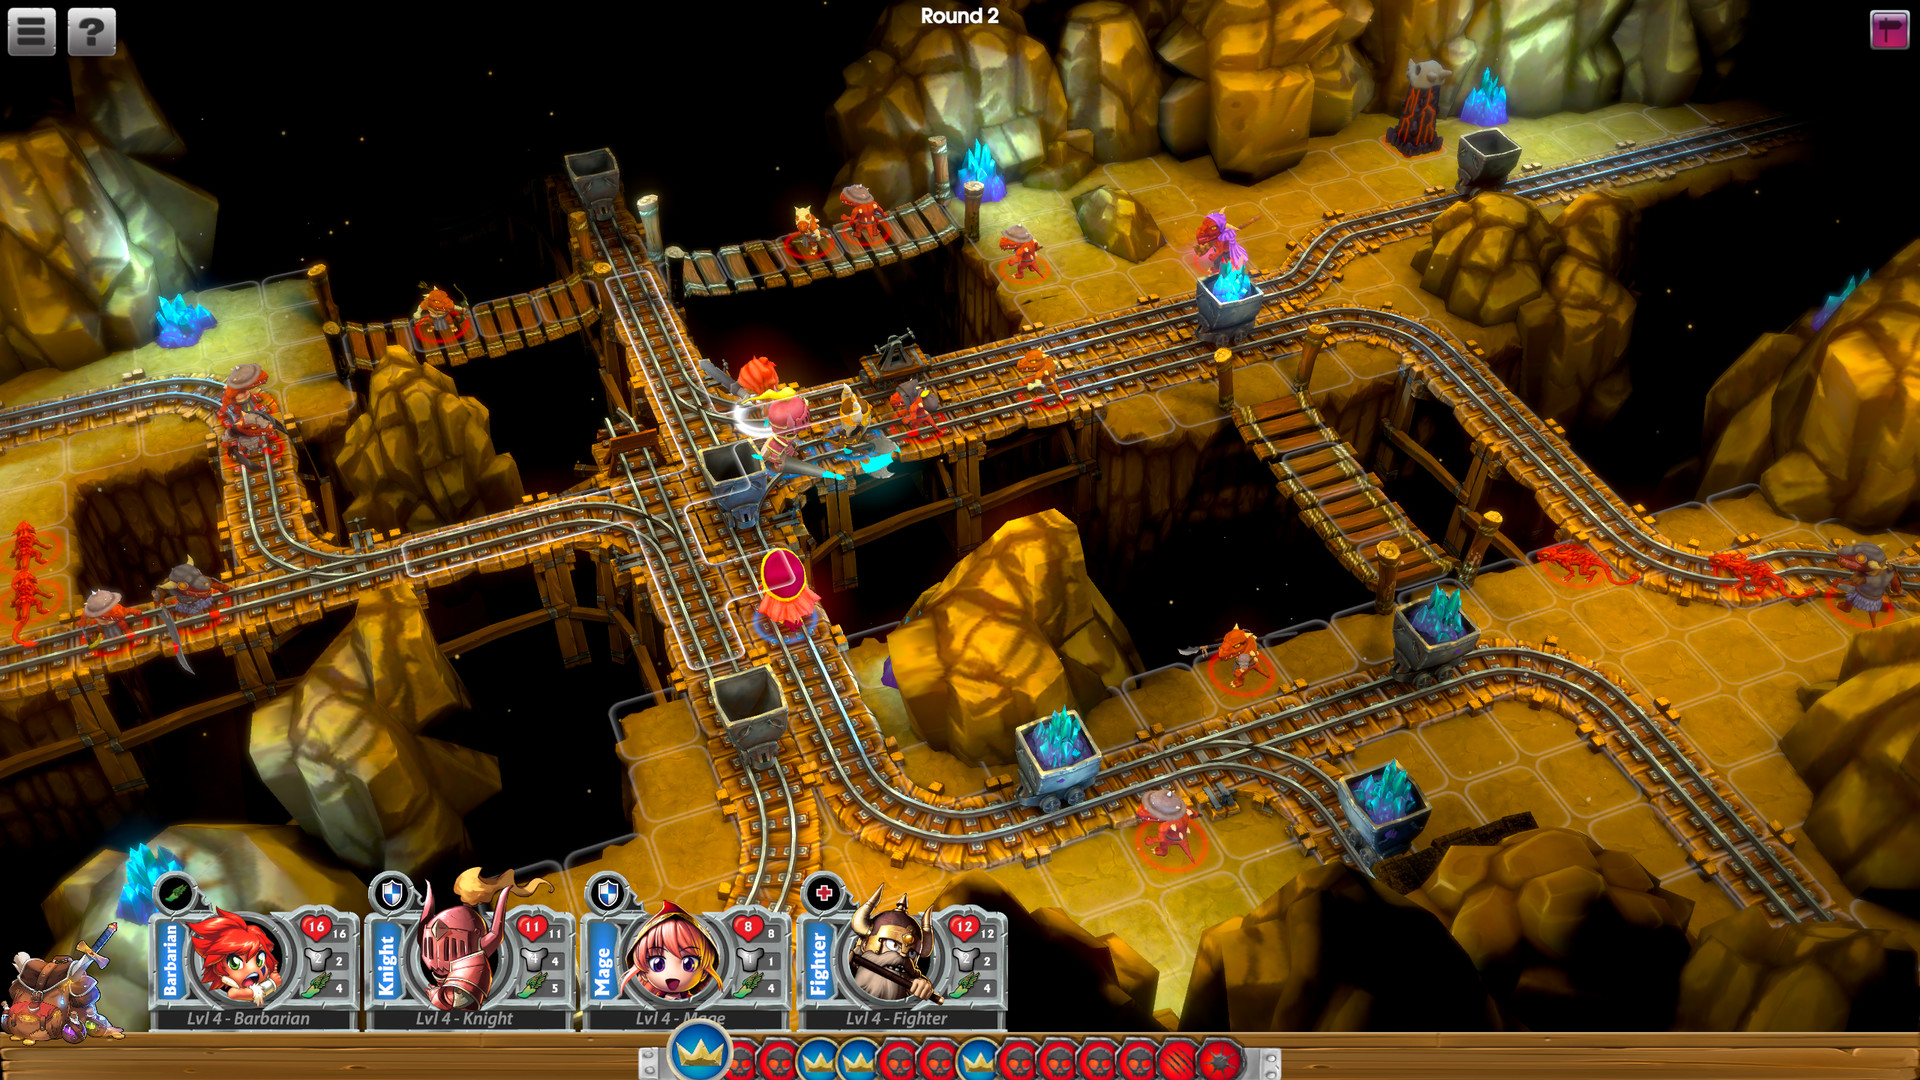 Super Dungeon Tactics Screenshot 1